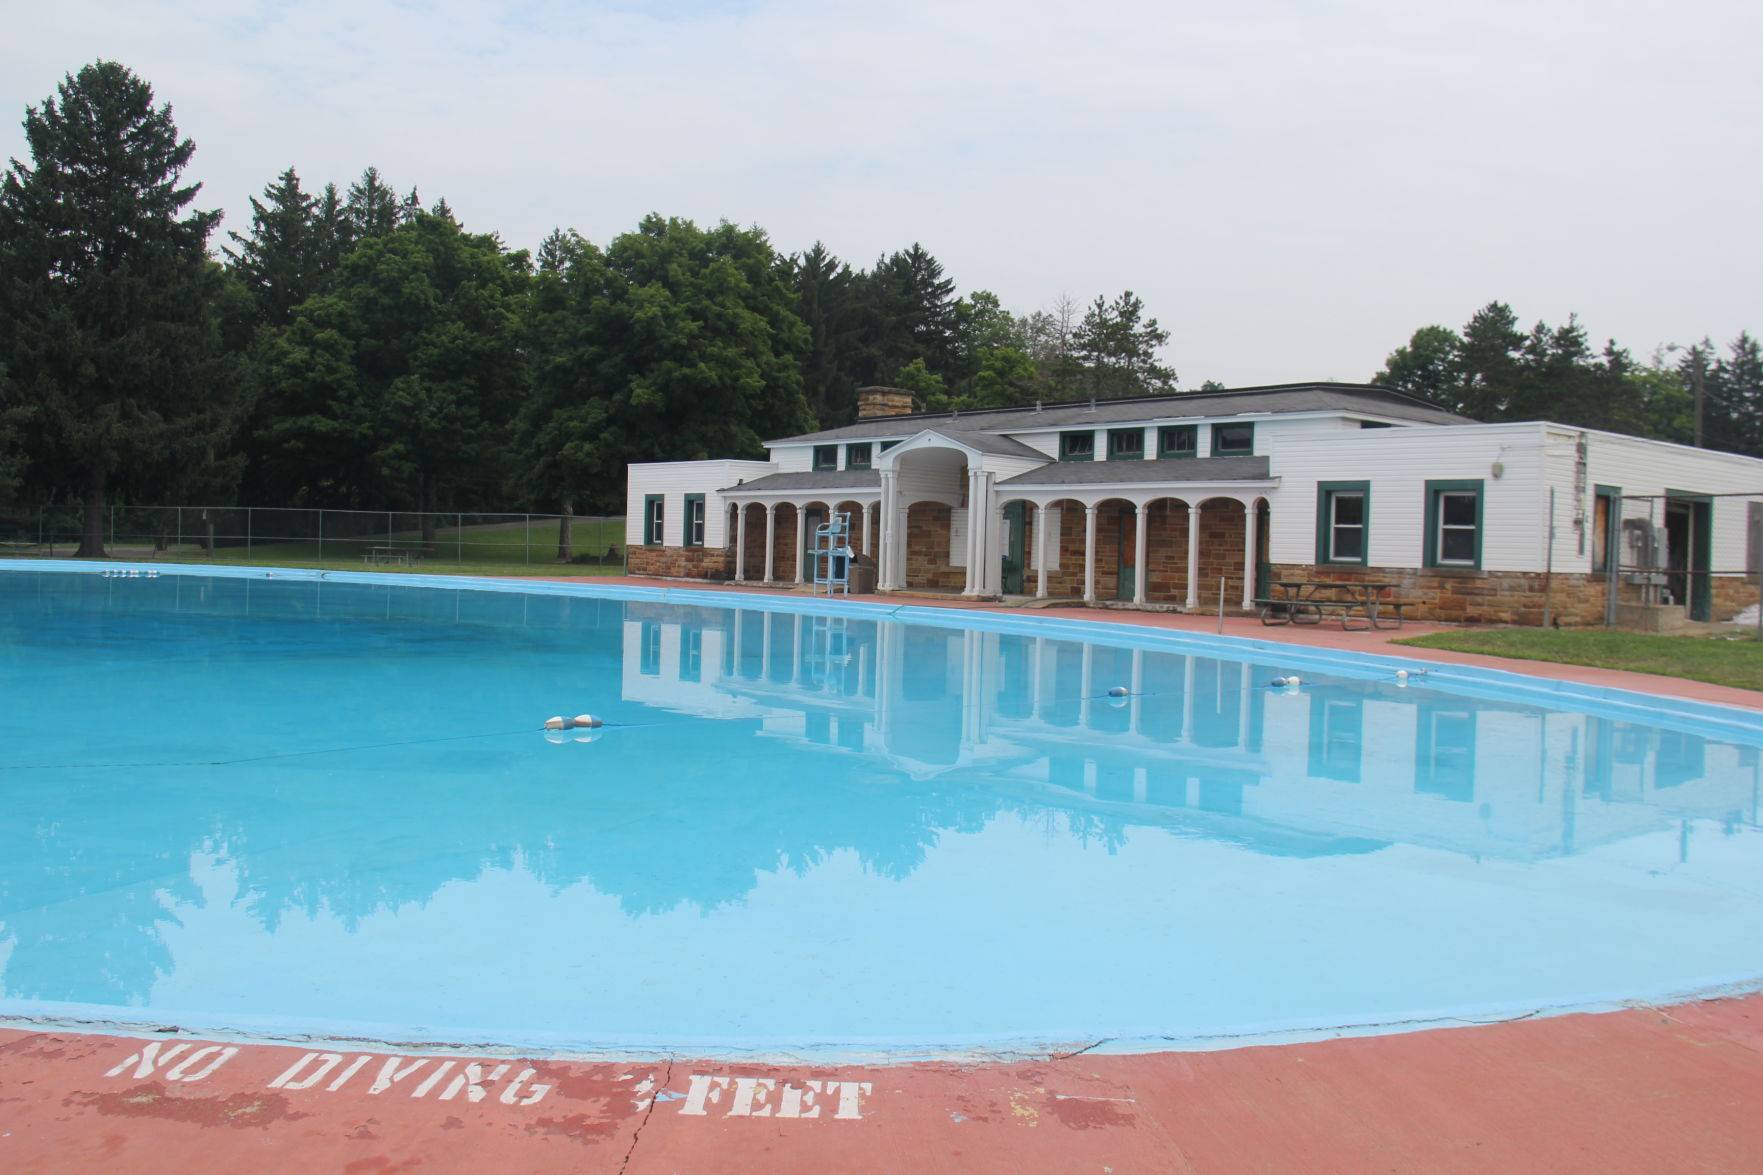 Liberty Park pool in Mansfield to be open free of charge Saturday due to heat